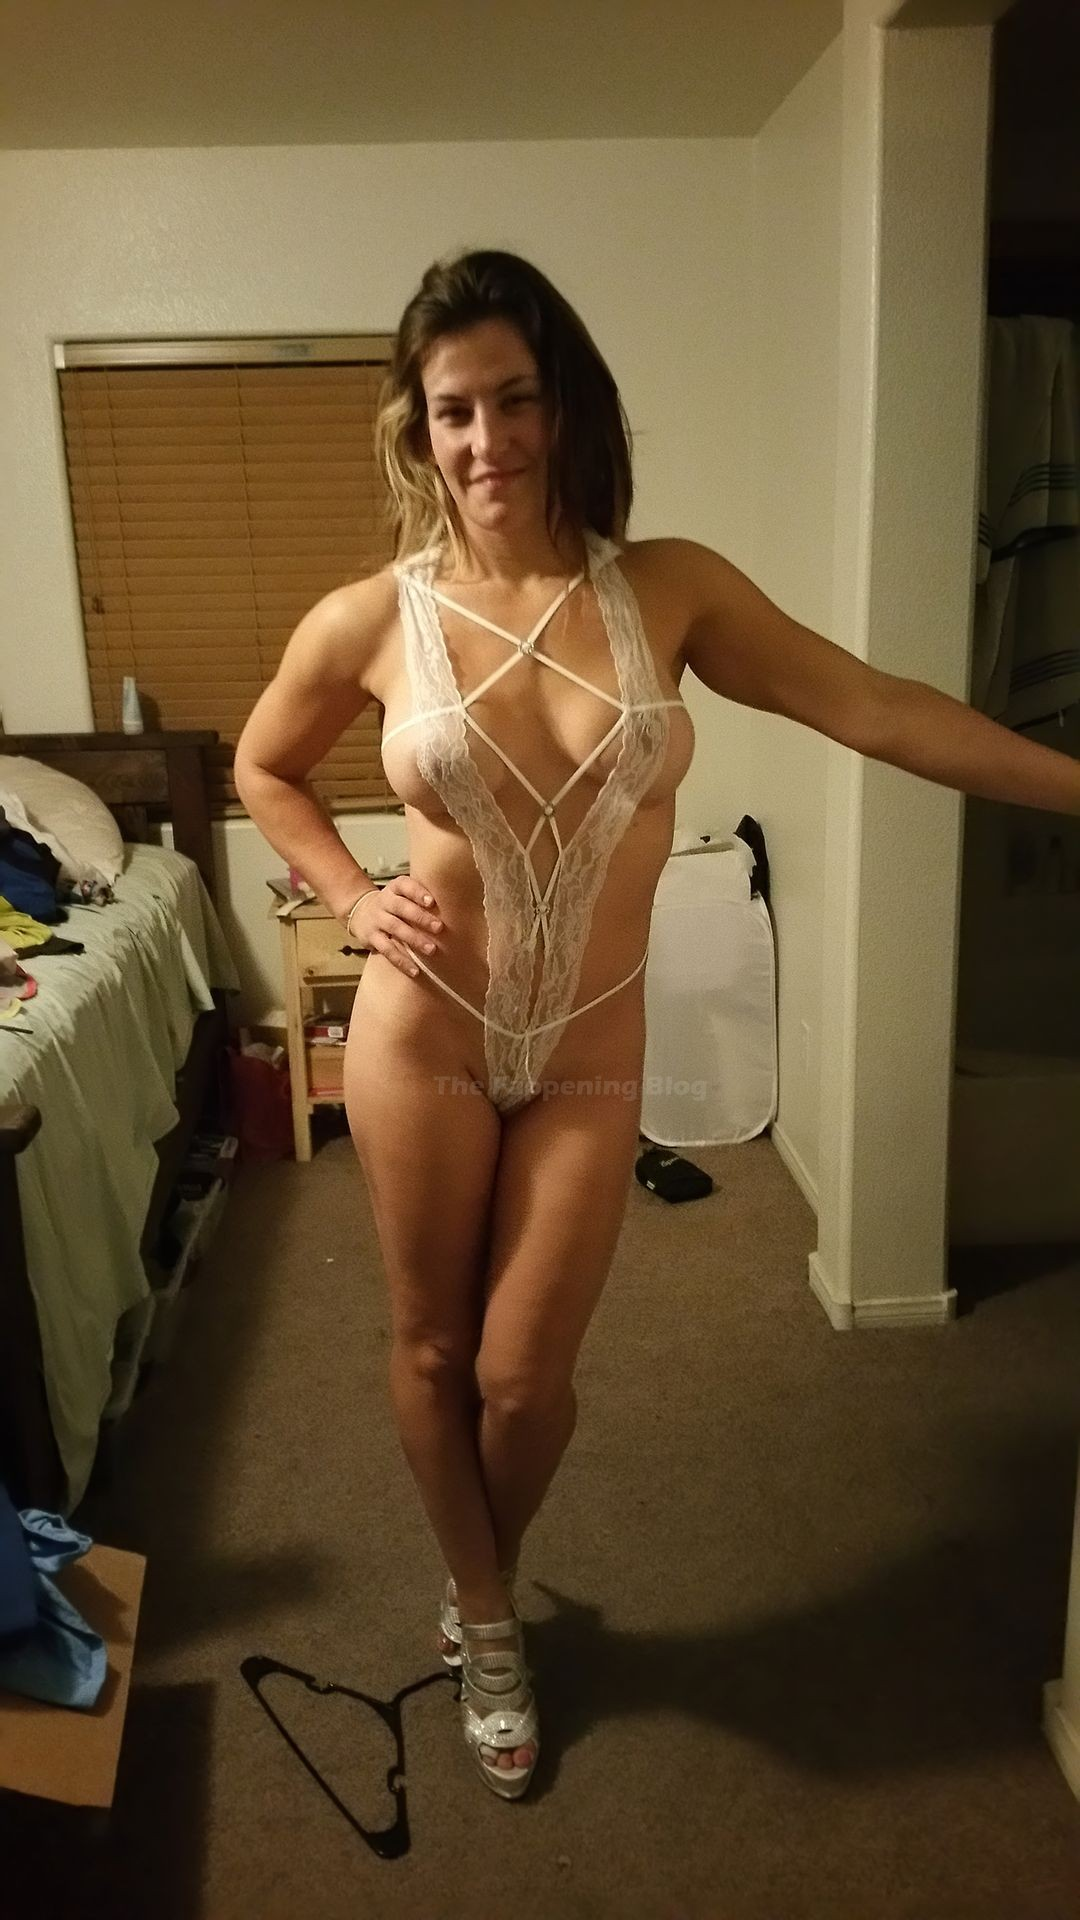 Miesha Tate Nude Leaked The Fappening 0022